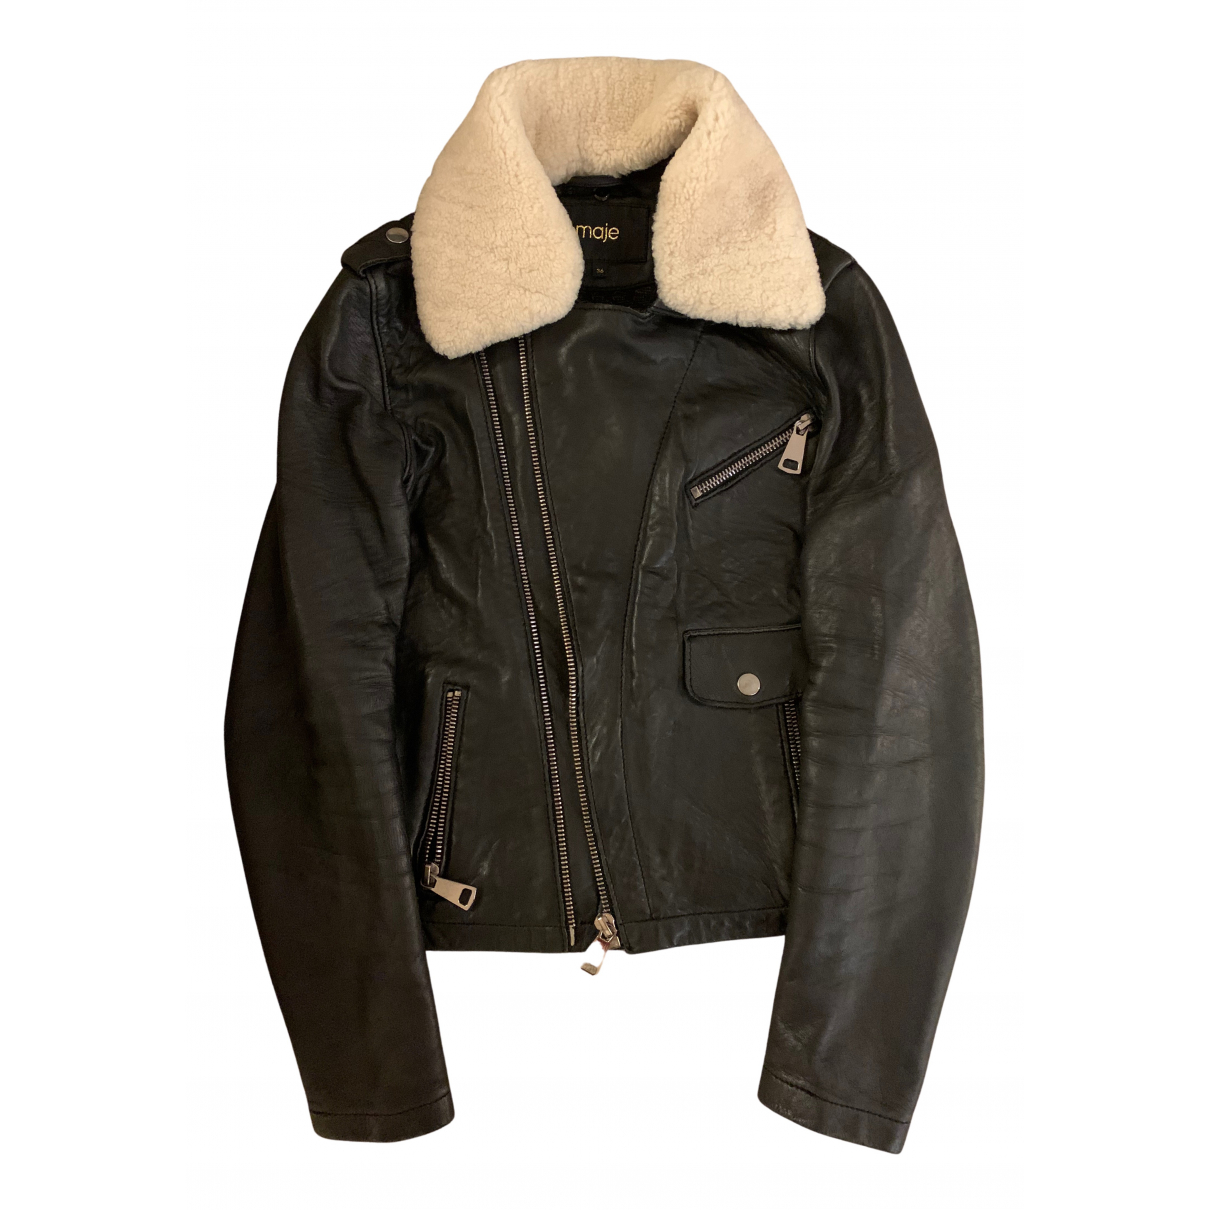 Maje N Black Leather jacket for Women 36 FR